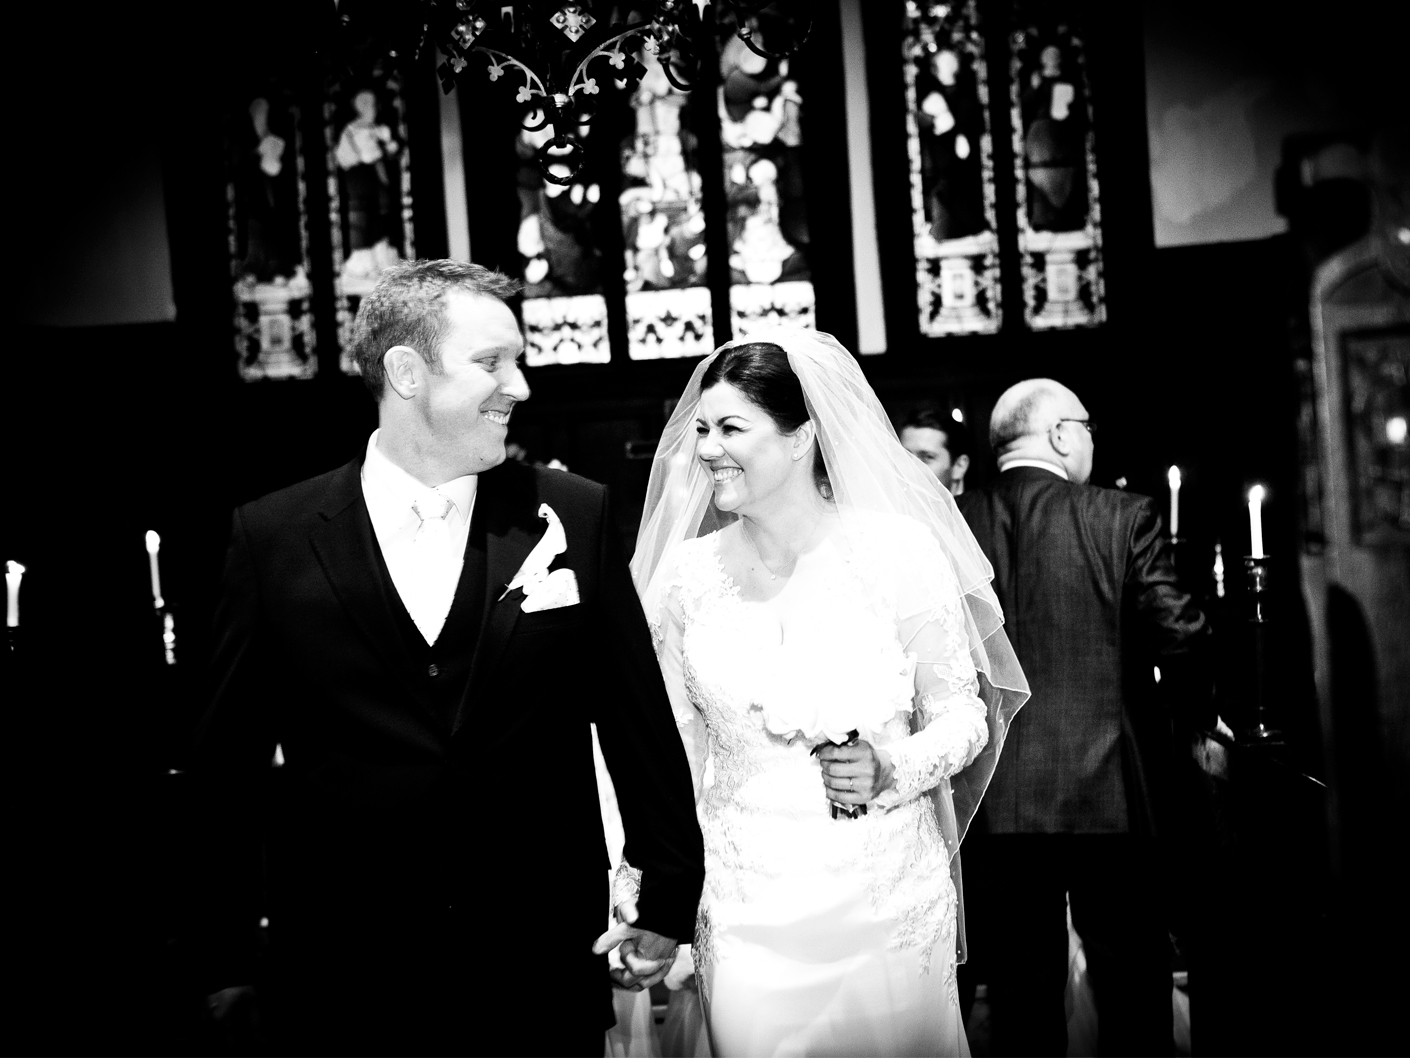 photography-of-the-bride-and-groom-after-the-wedding-ceremony at nunsmere hall